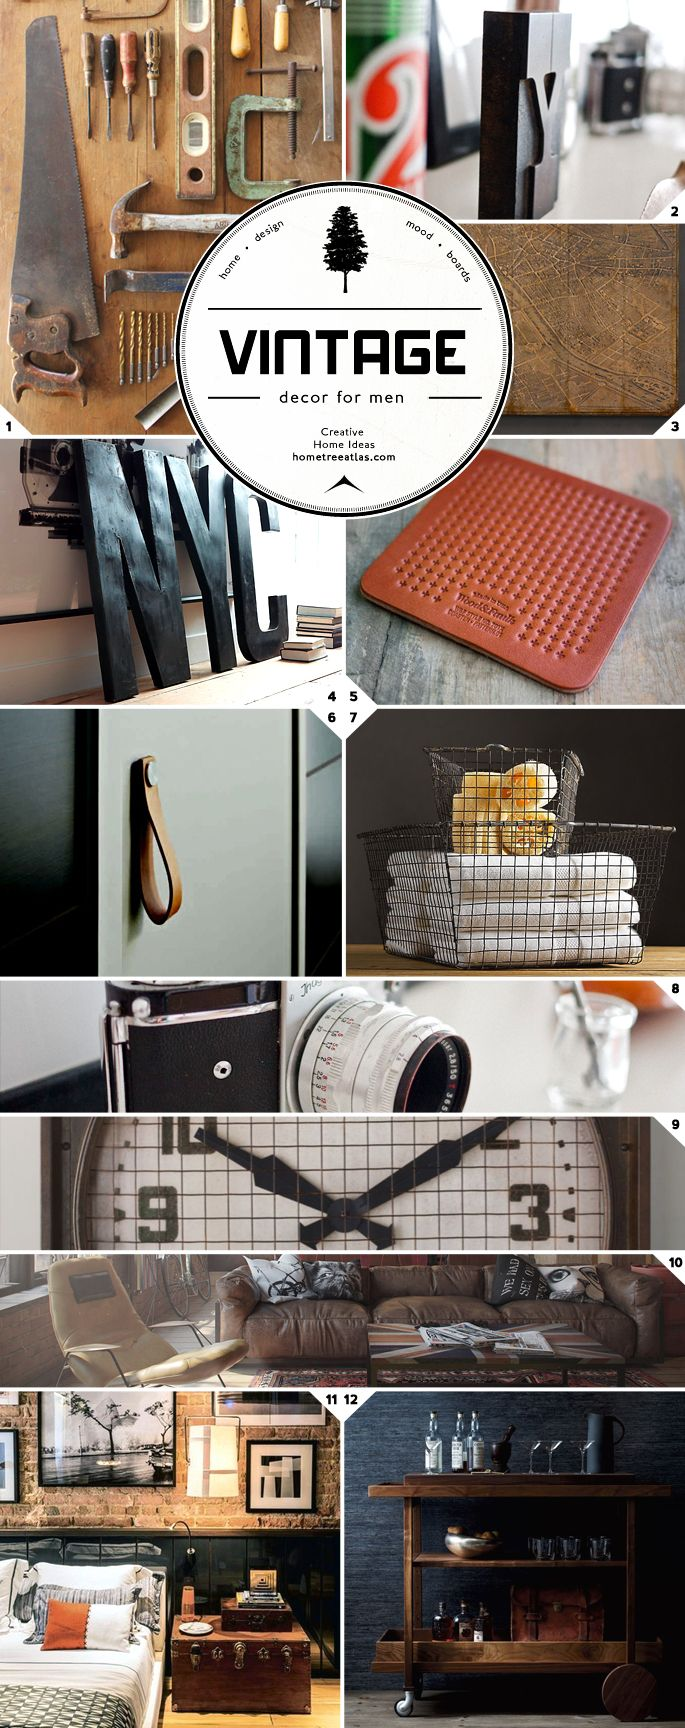 Vintage Decor Ideas For Men Vintage Decor Vintage Industrial